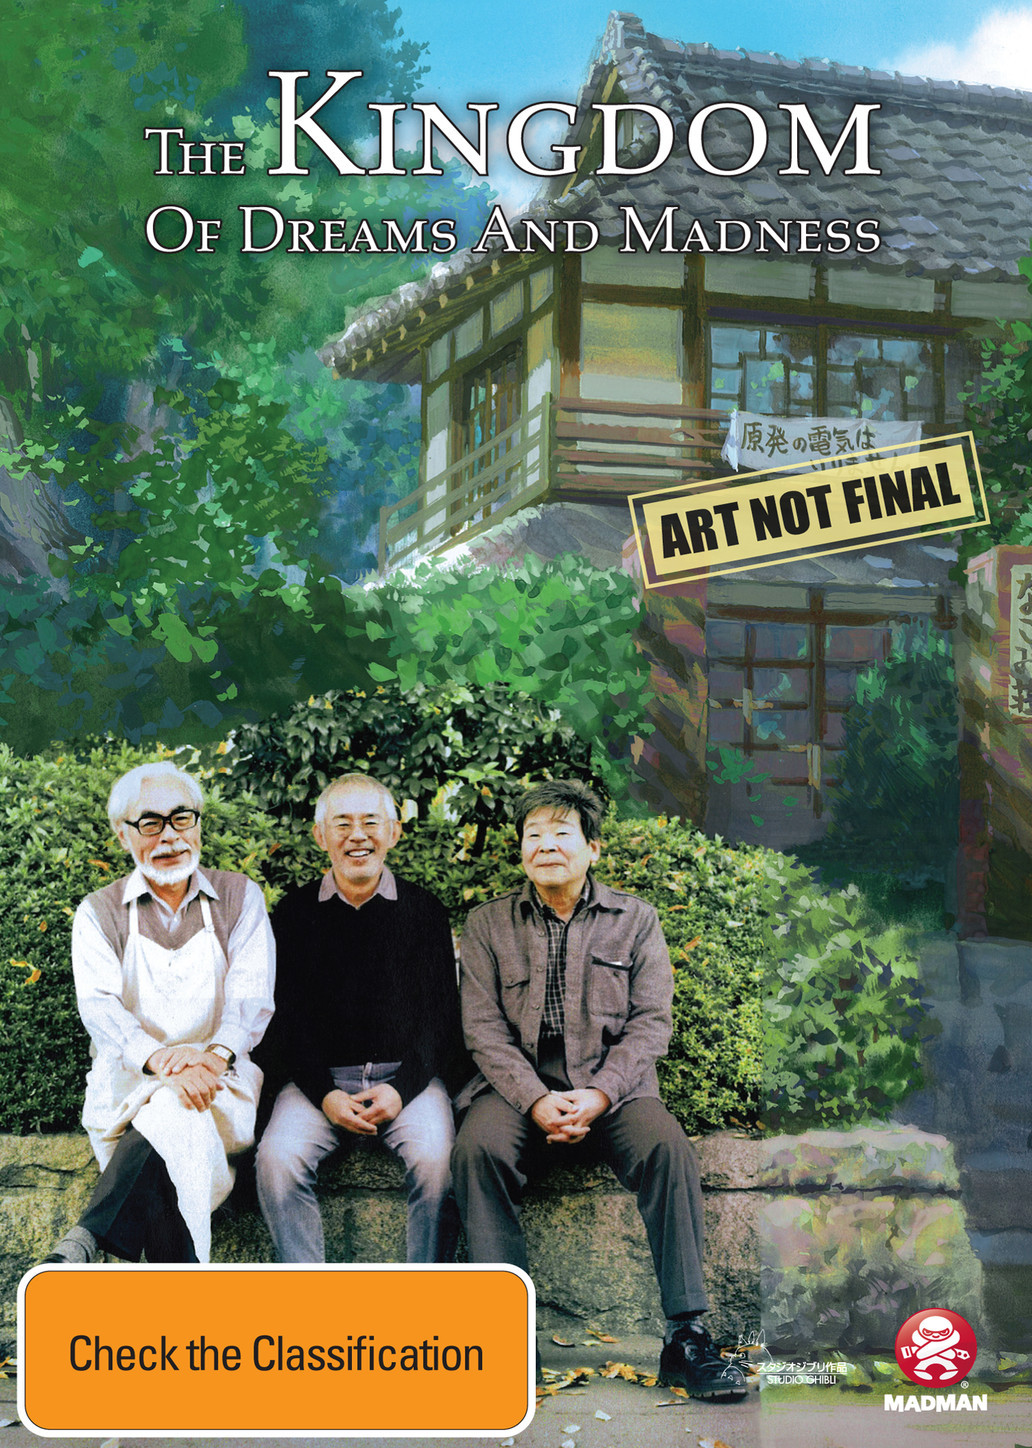 The Kingdom of Dreams and Madness image